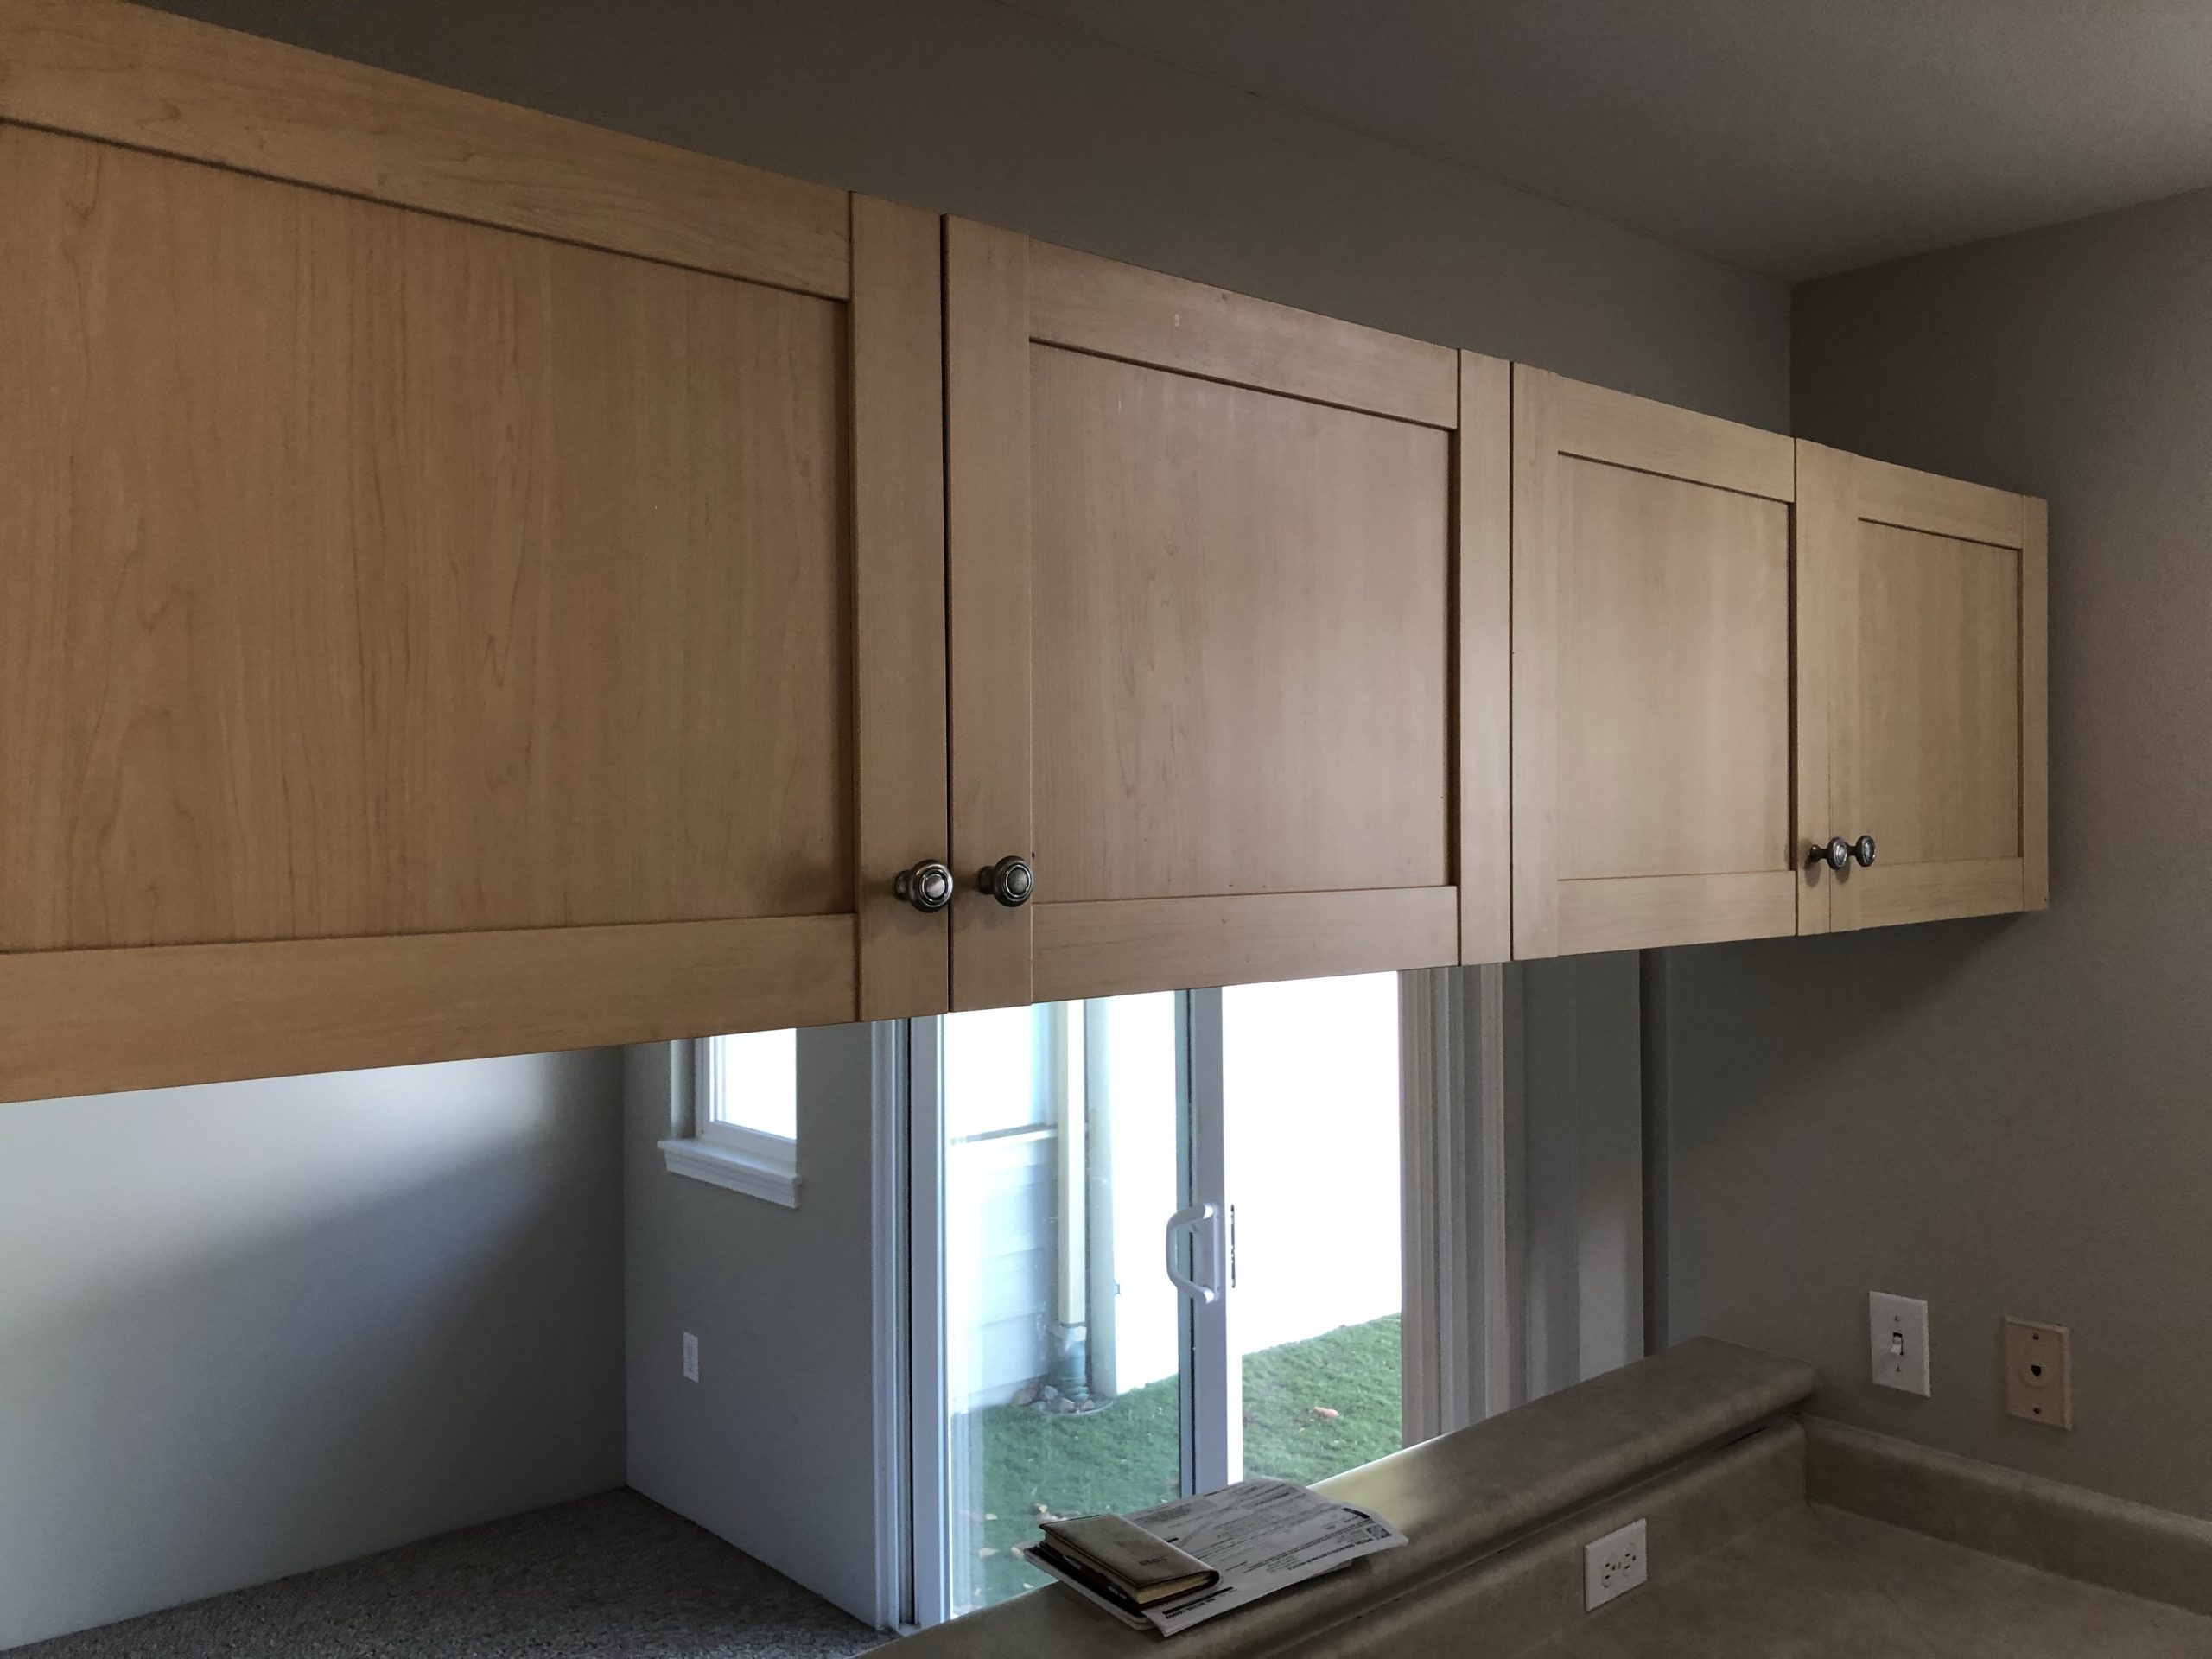 These are Laminate Cabinets 3 of 4